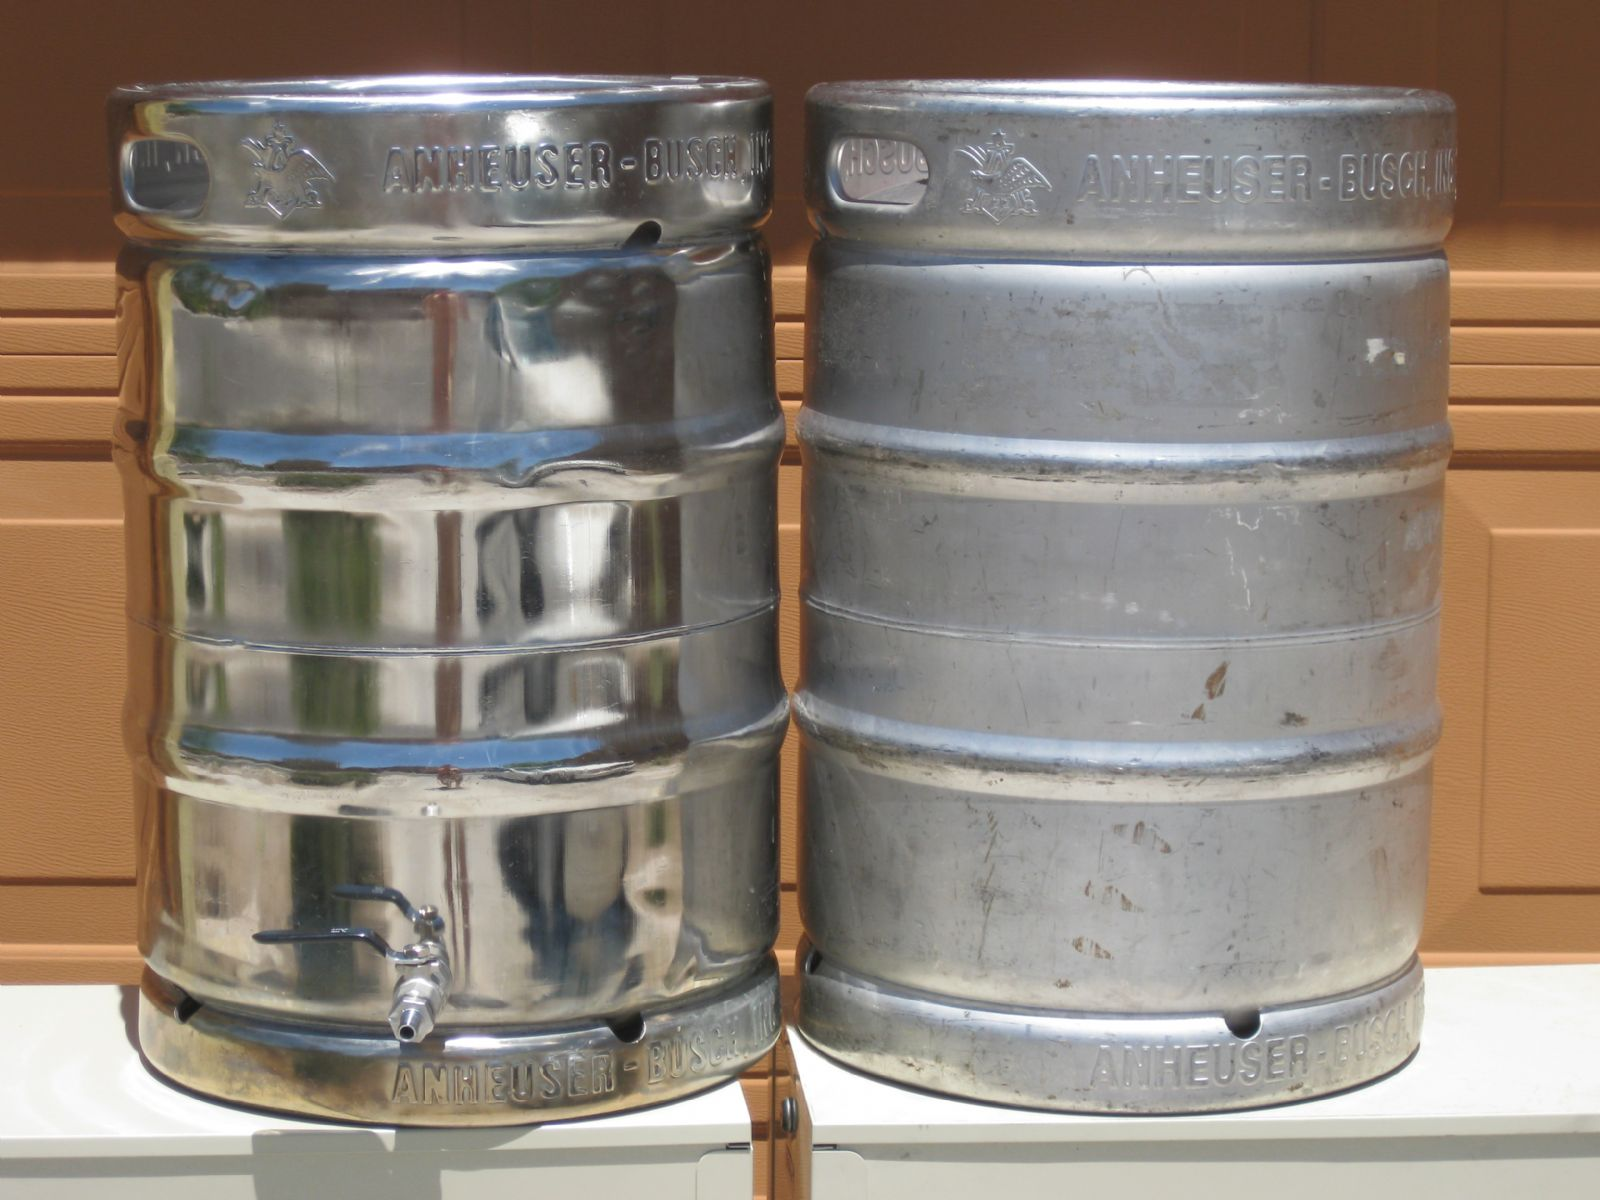 Polished Keg Before and After